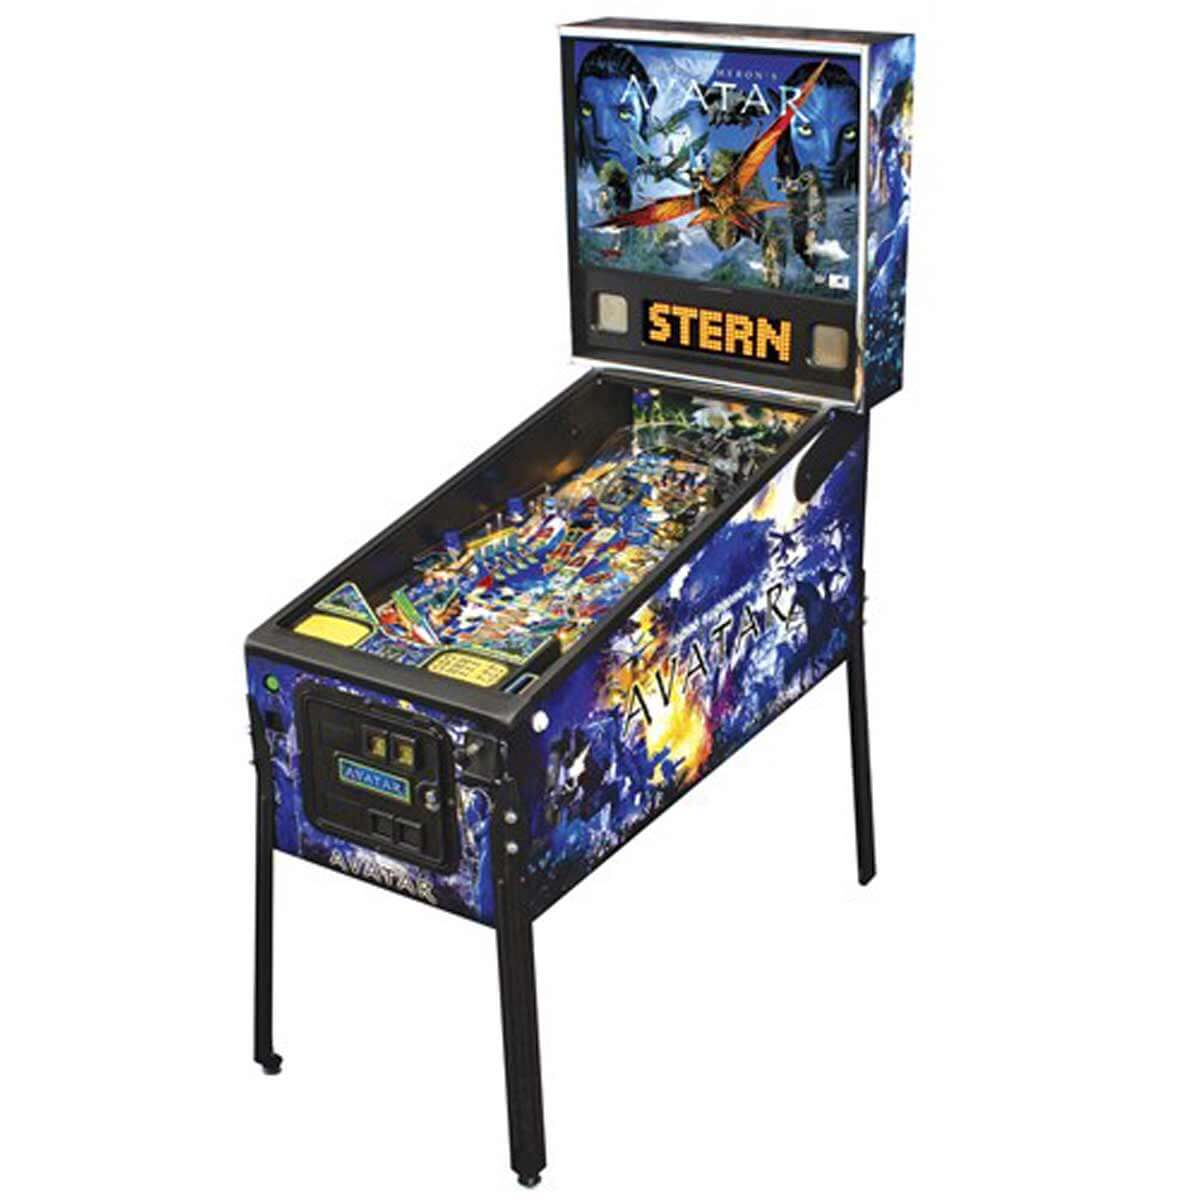 buy avatar pinball machine by stern online at 6499